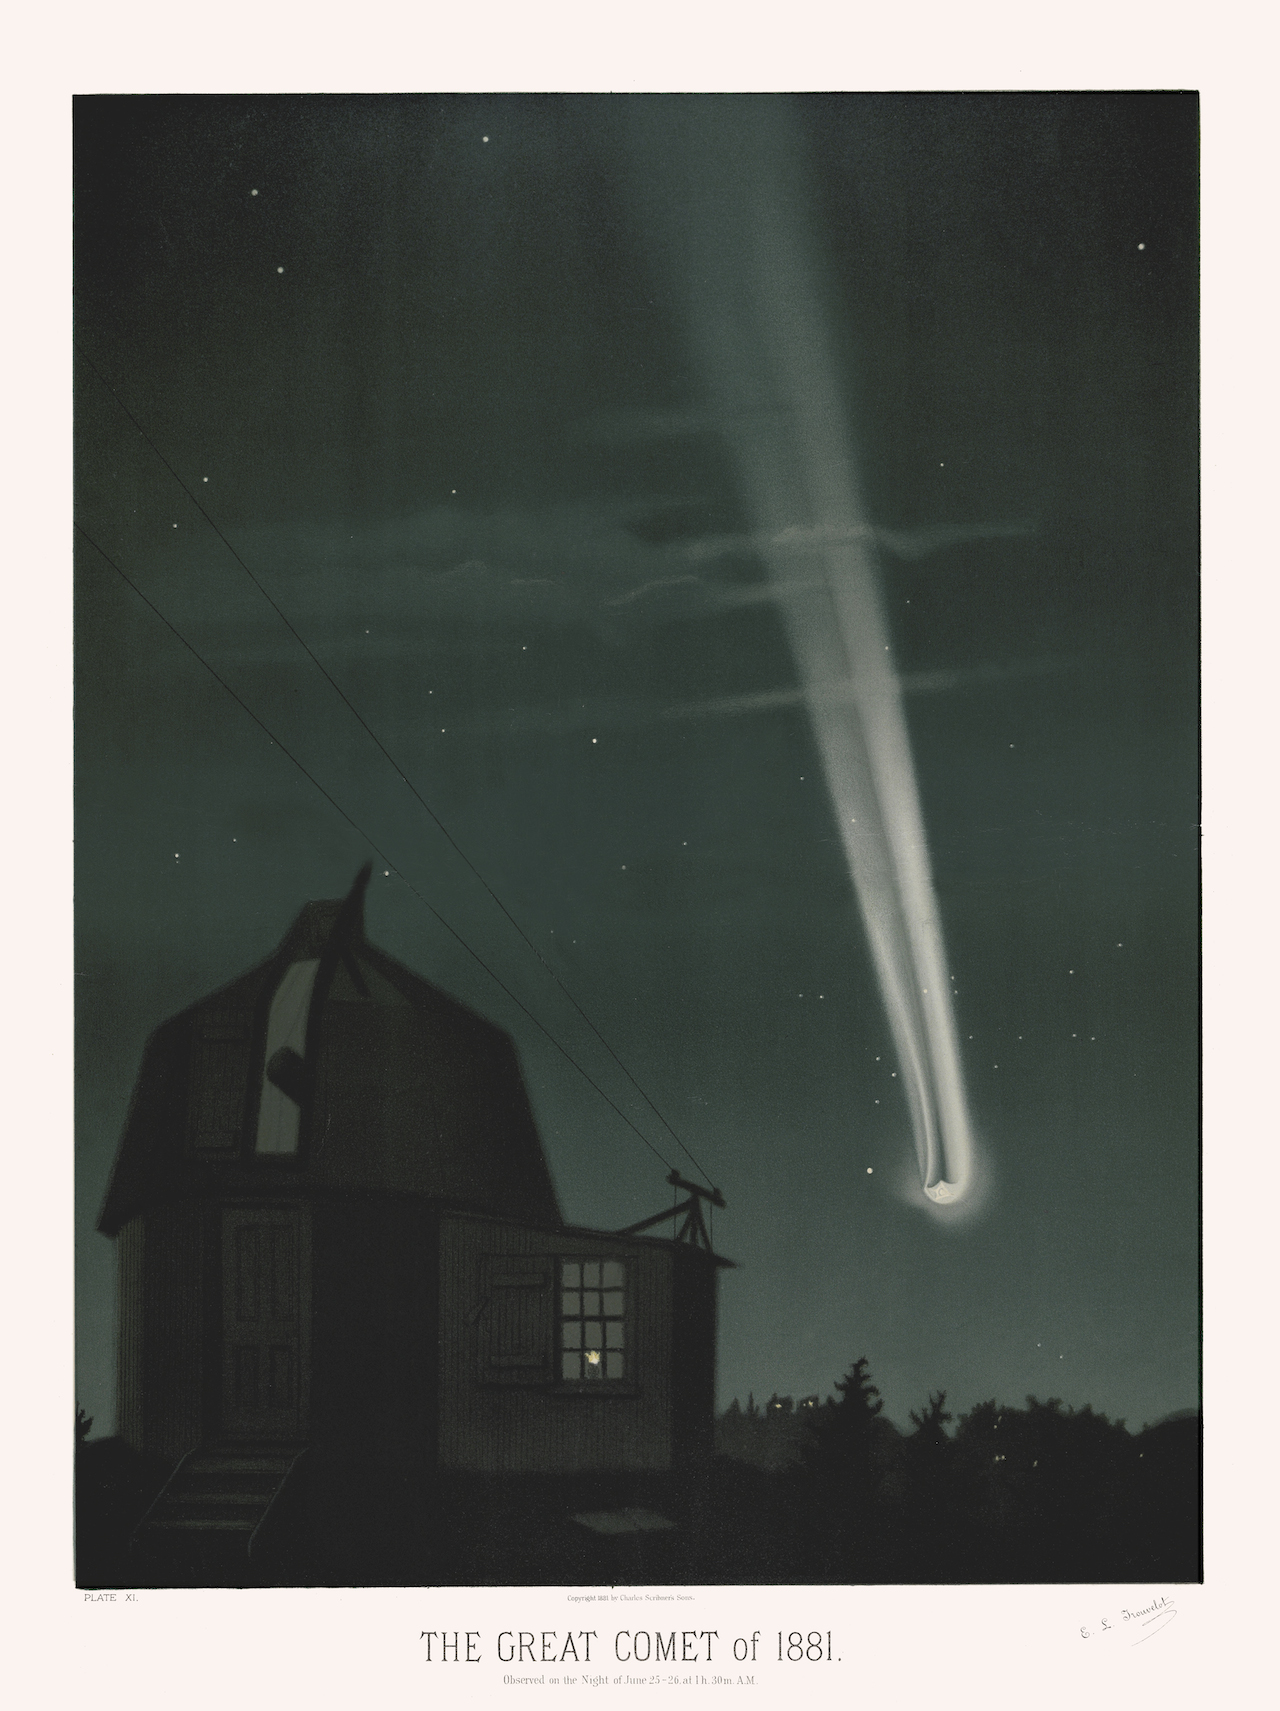 Print by Étienne Trouvelot of the Great Comet of 1881 (Courtesy the U. of Michigan Library)